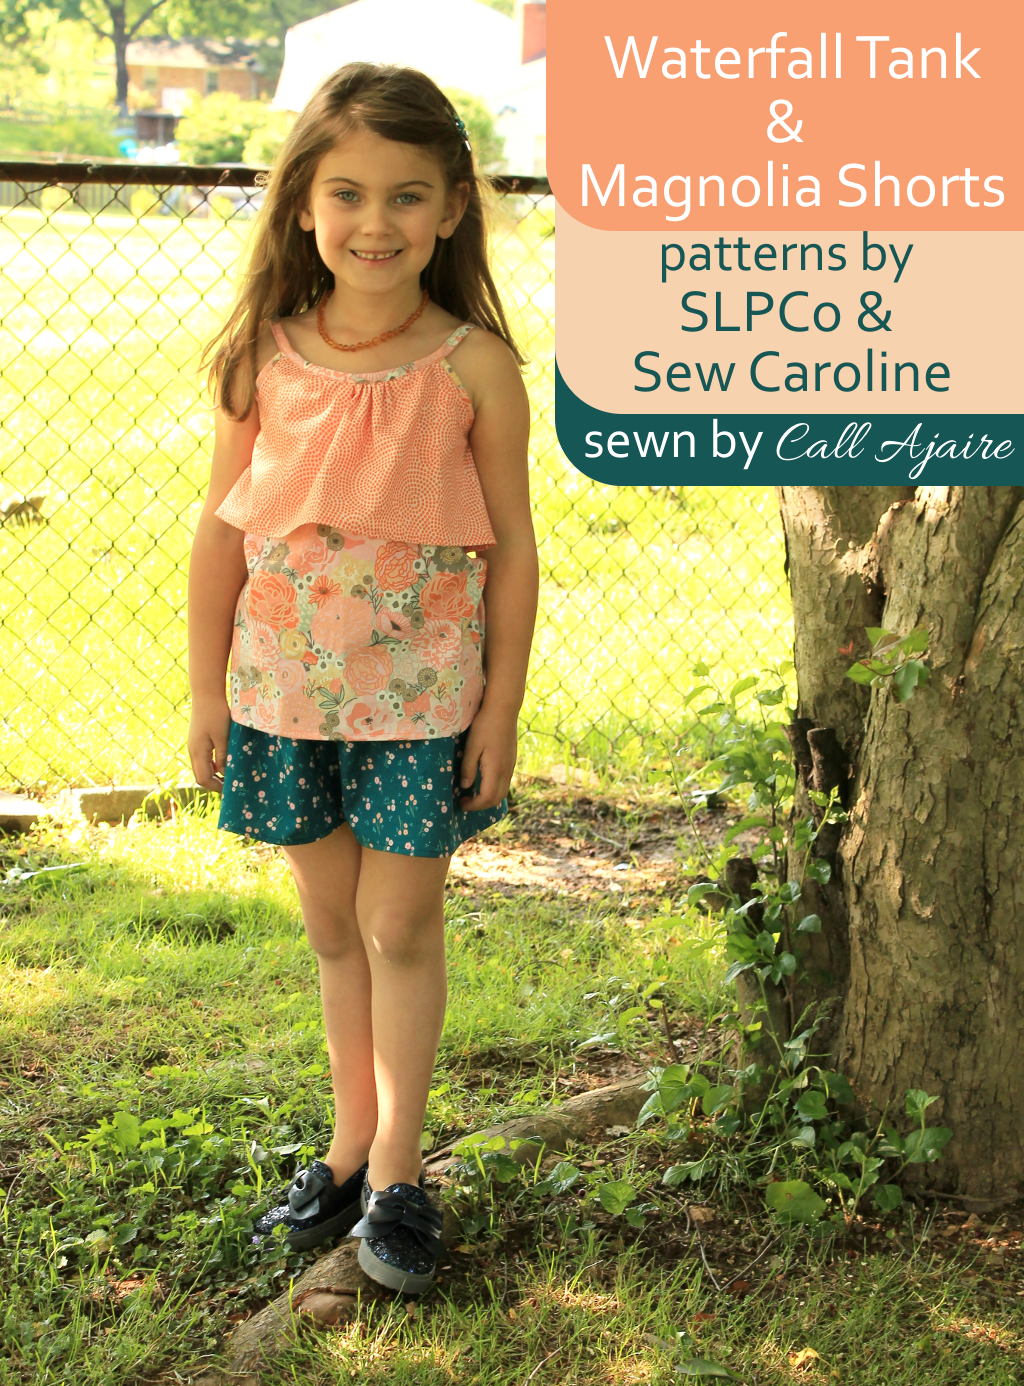 Waterfall Tank & Magnolia Shorts patterns by SLPCo & Sew Caroline